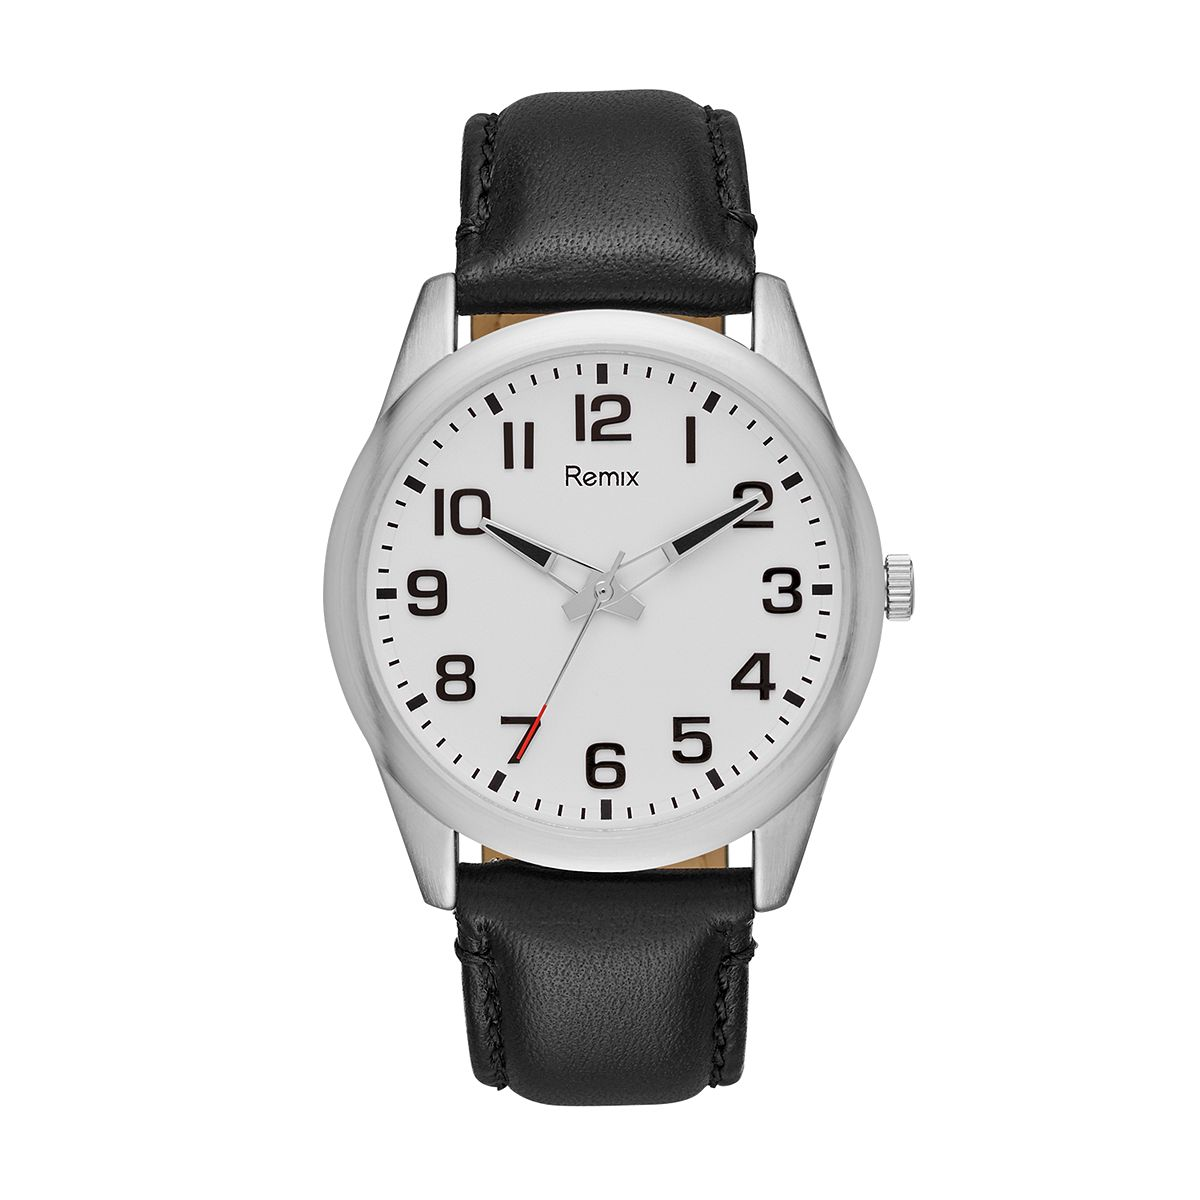 Black Leather Strap Watch  / Promotional product fully customize